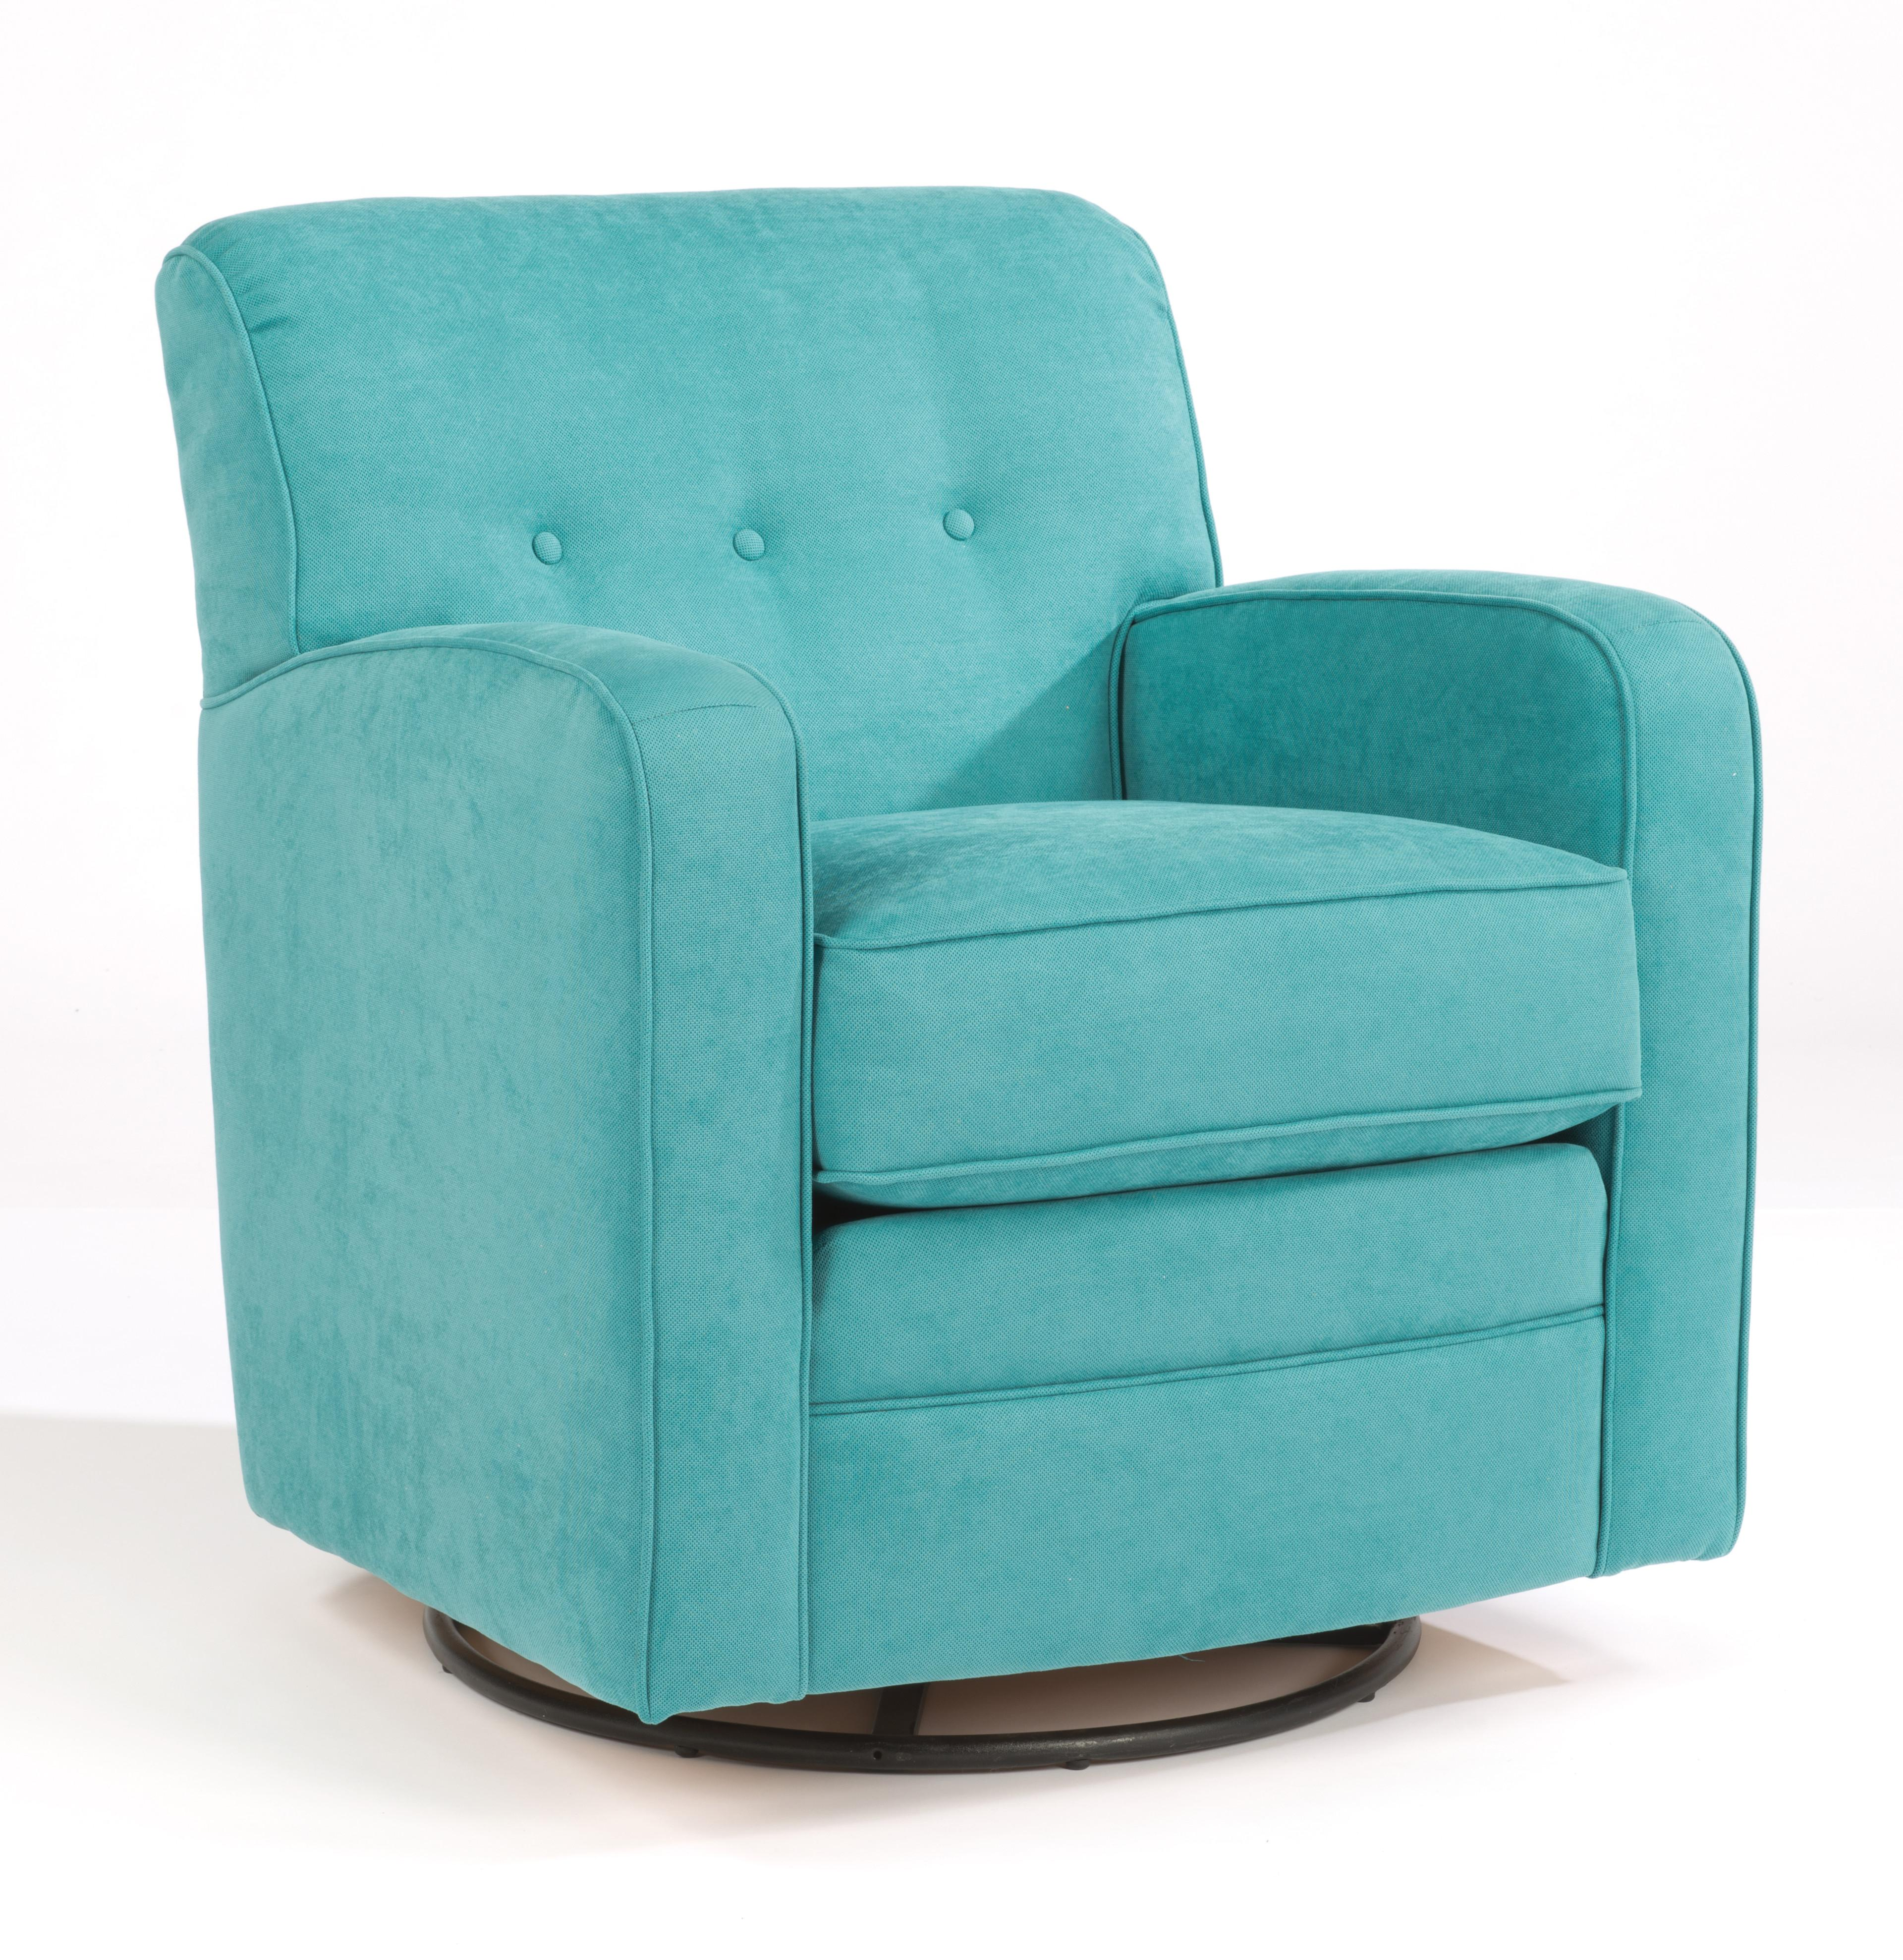 new images of swivel accent chair with arms